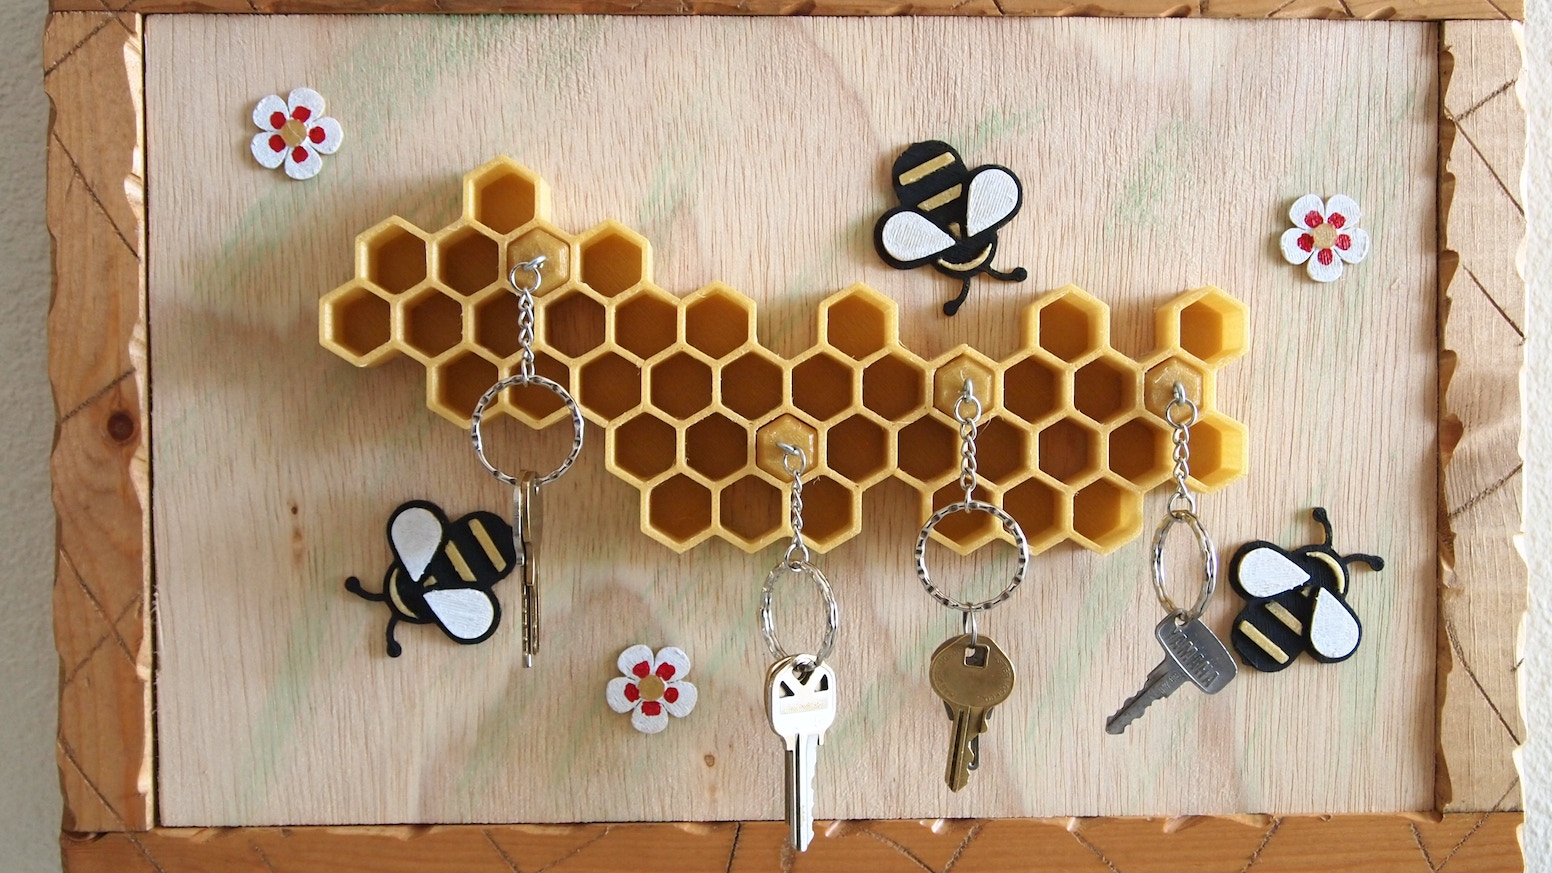 The Honeycomb Key Holder By 3d Ideas Kickstarter